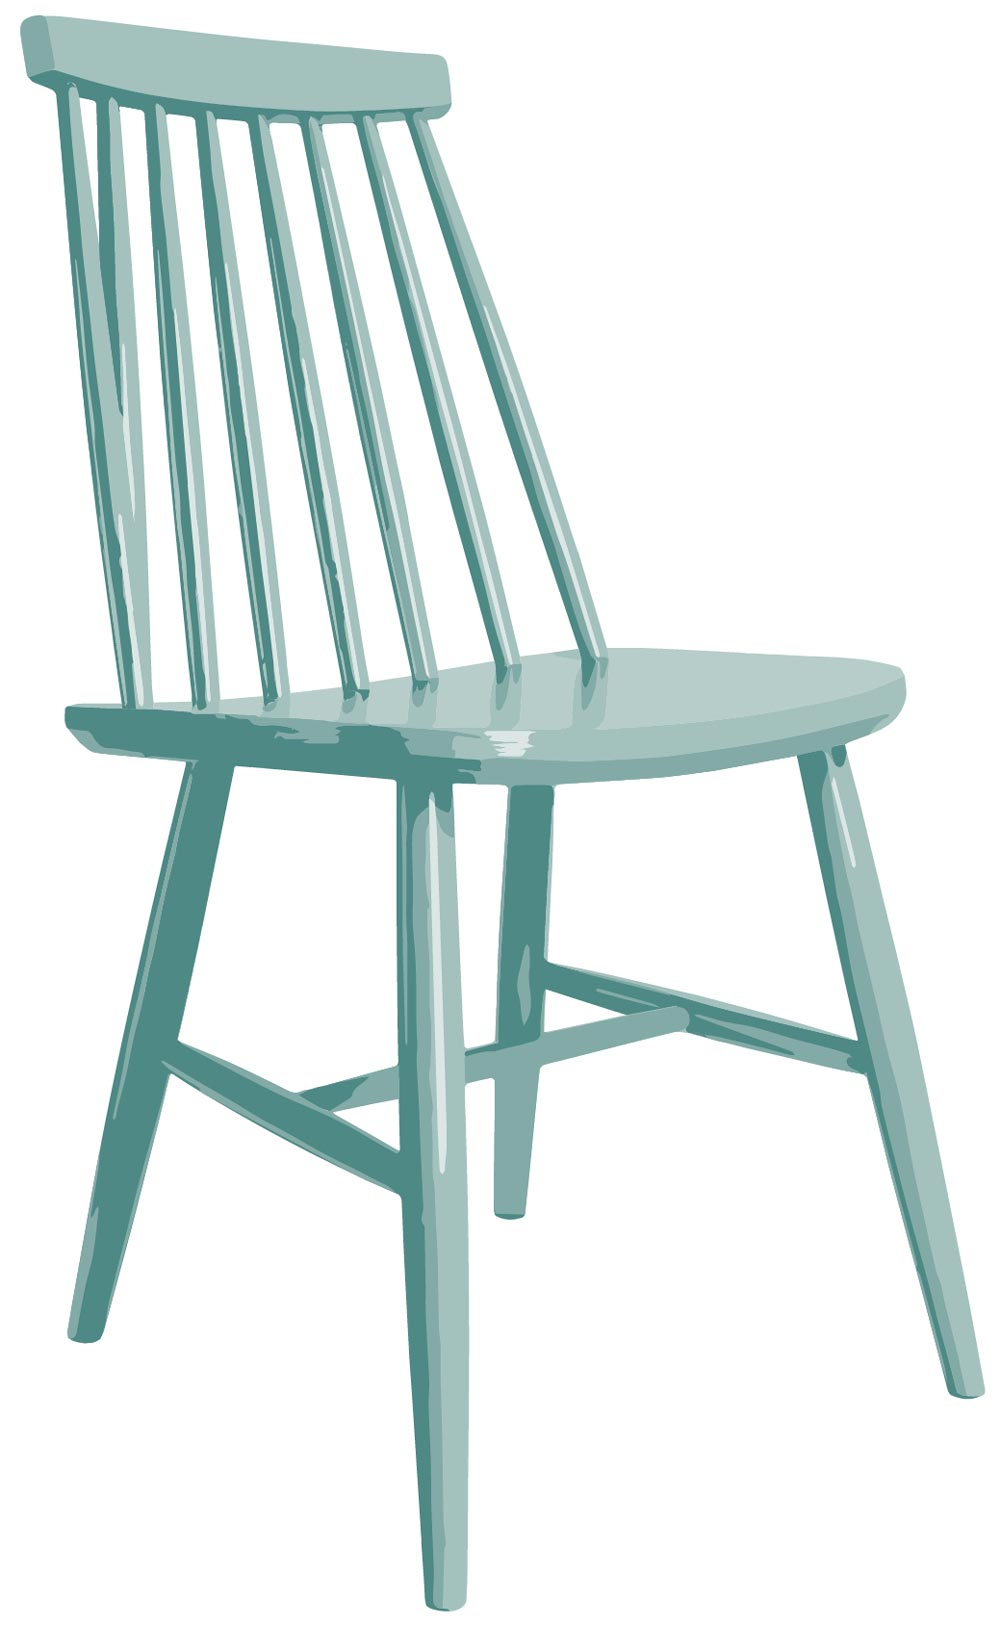 Mid Century Modern Chair simplified to 4 colours